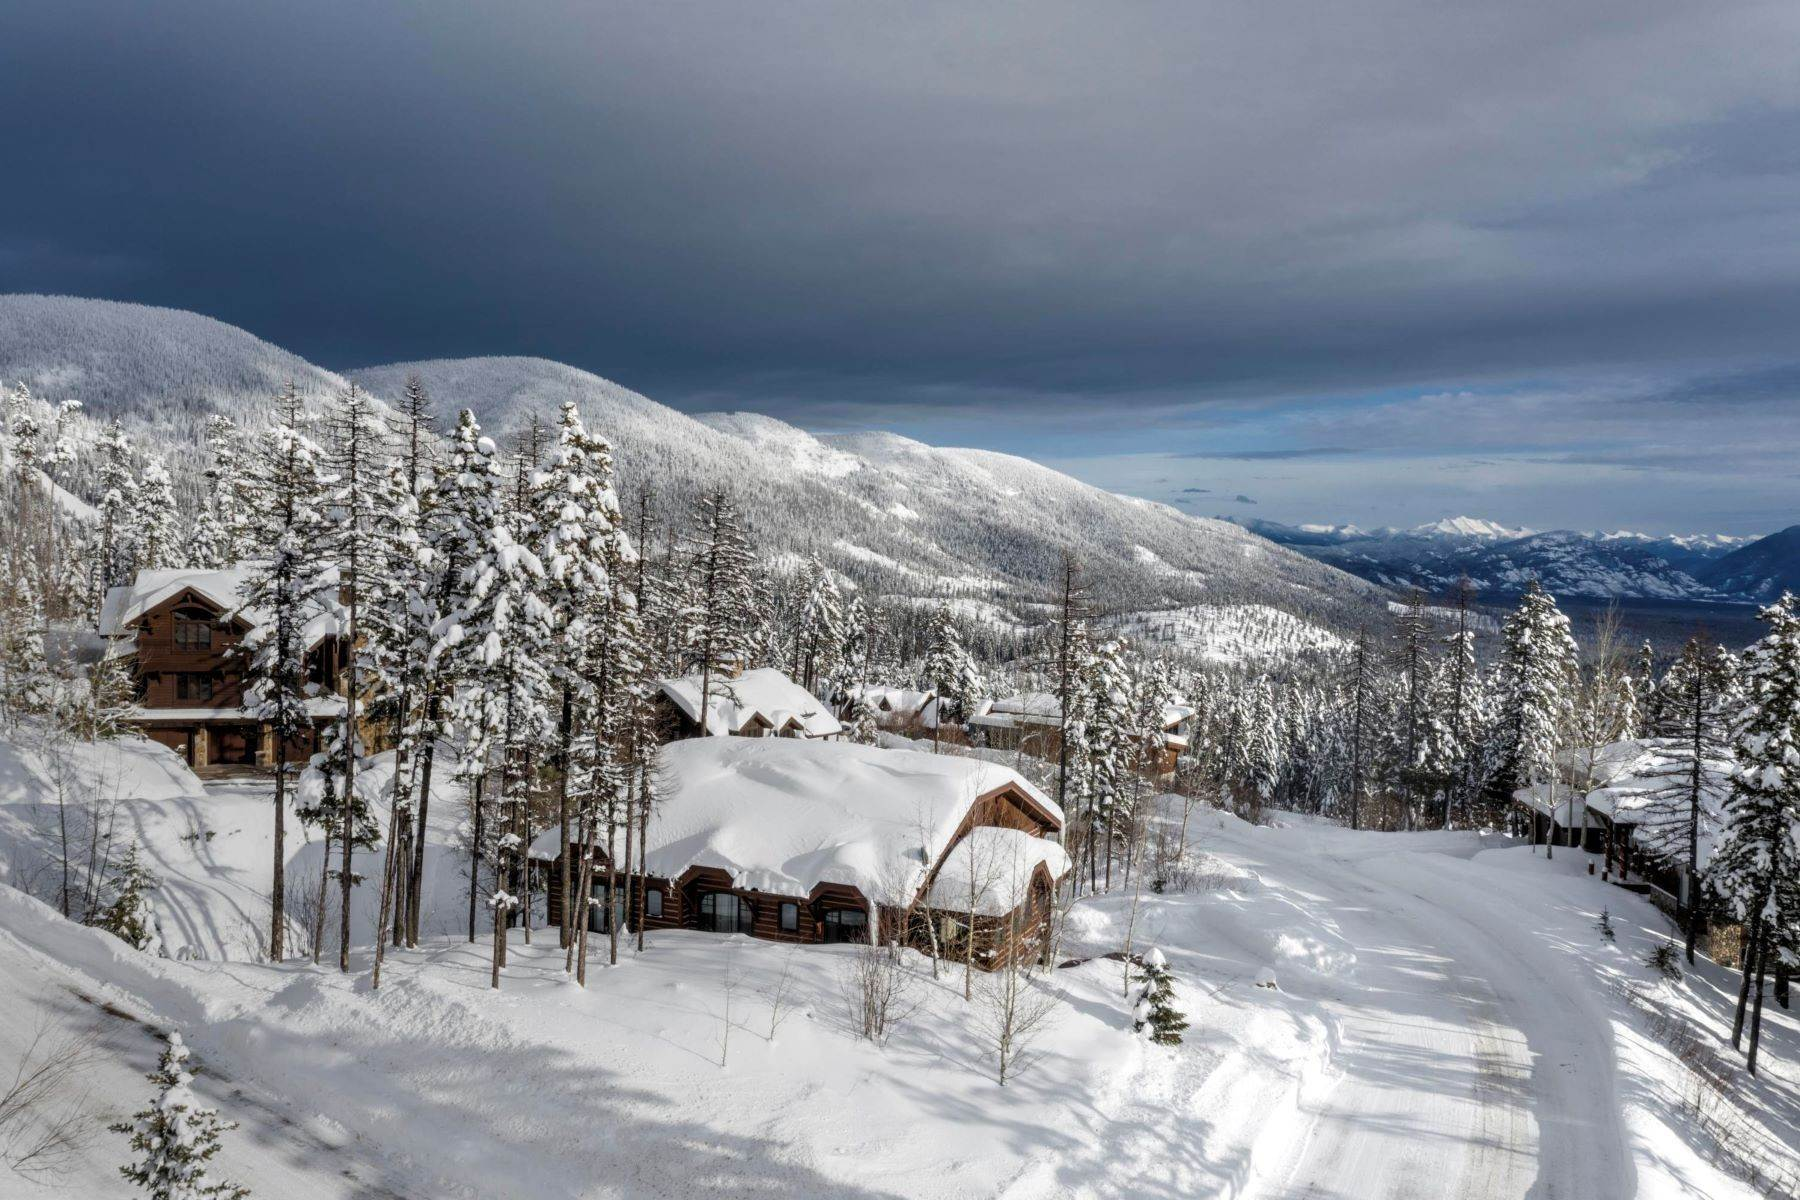 Single Family Homes for Sale at Ski-in/Ski-out View Home 194 Ridge Run Drive Whitefish, Montana 59937 United States